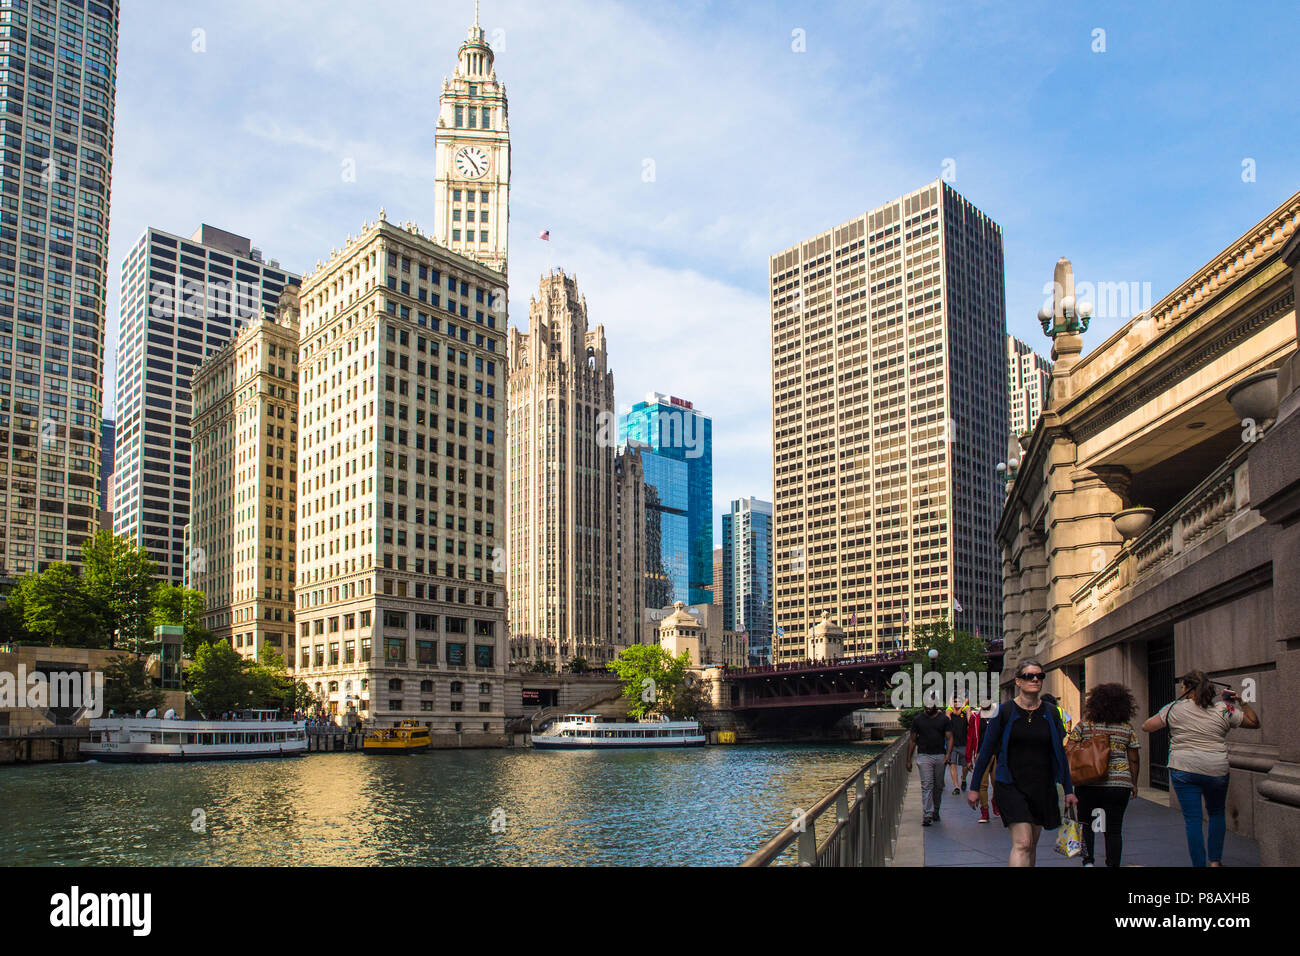 CHICAGO, ILLINOIS - JUNE 25, 2018: View of the city of Chicago as seen from the river with buildings and boats in view. Stock Photo